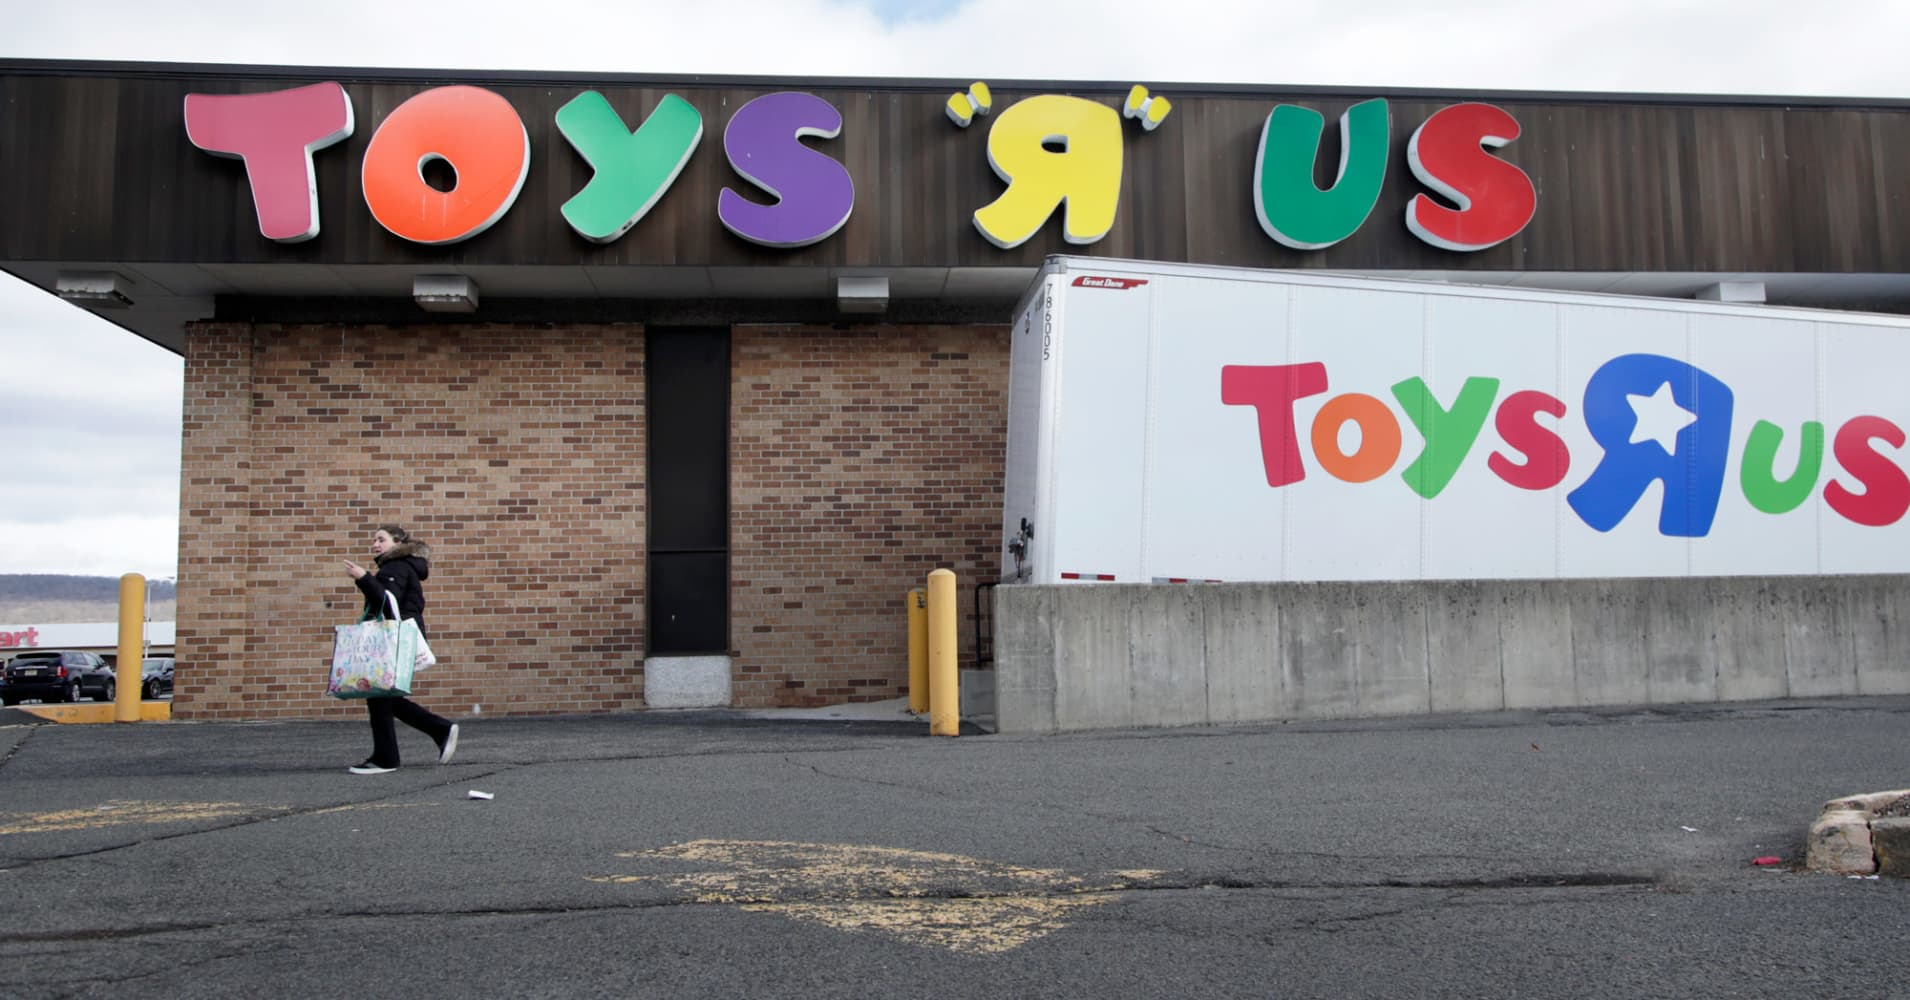 Toys R Us closures will leave hundreds of vacant stores on the market with few obvious replacements | CNBC